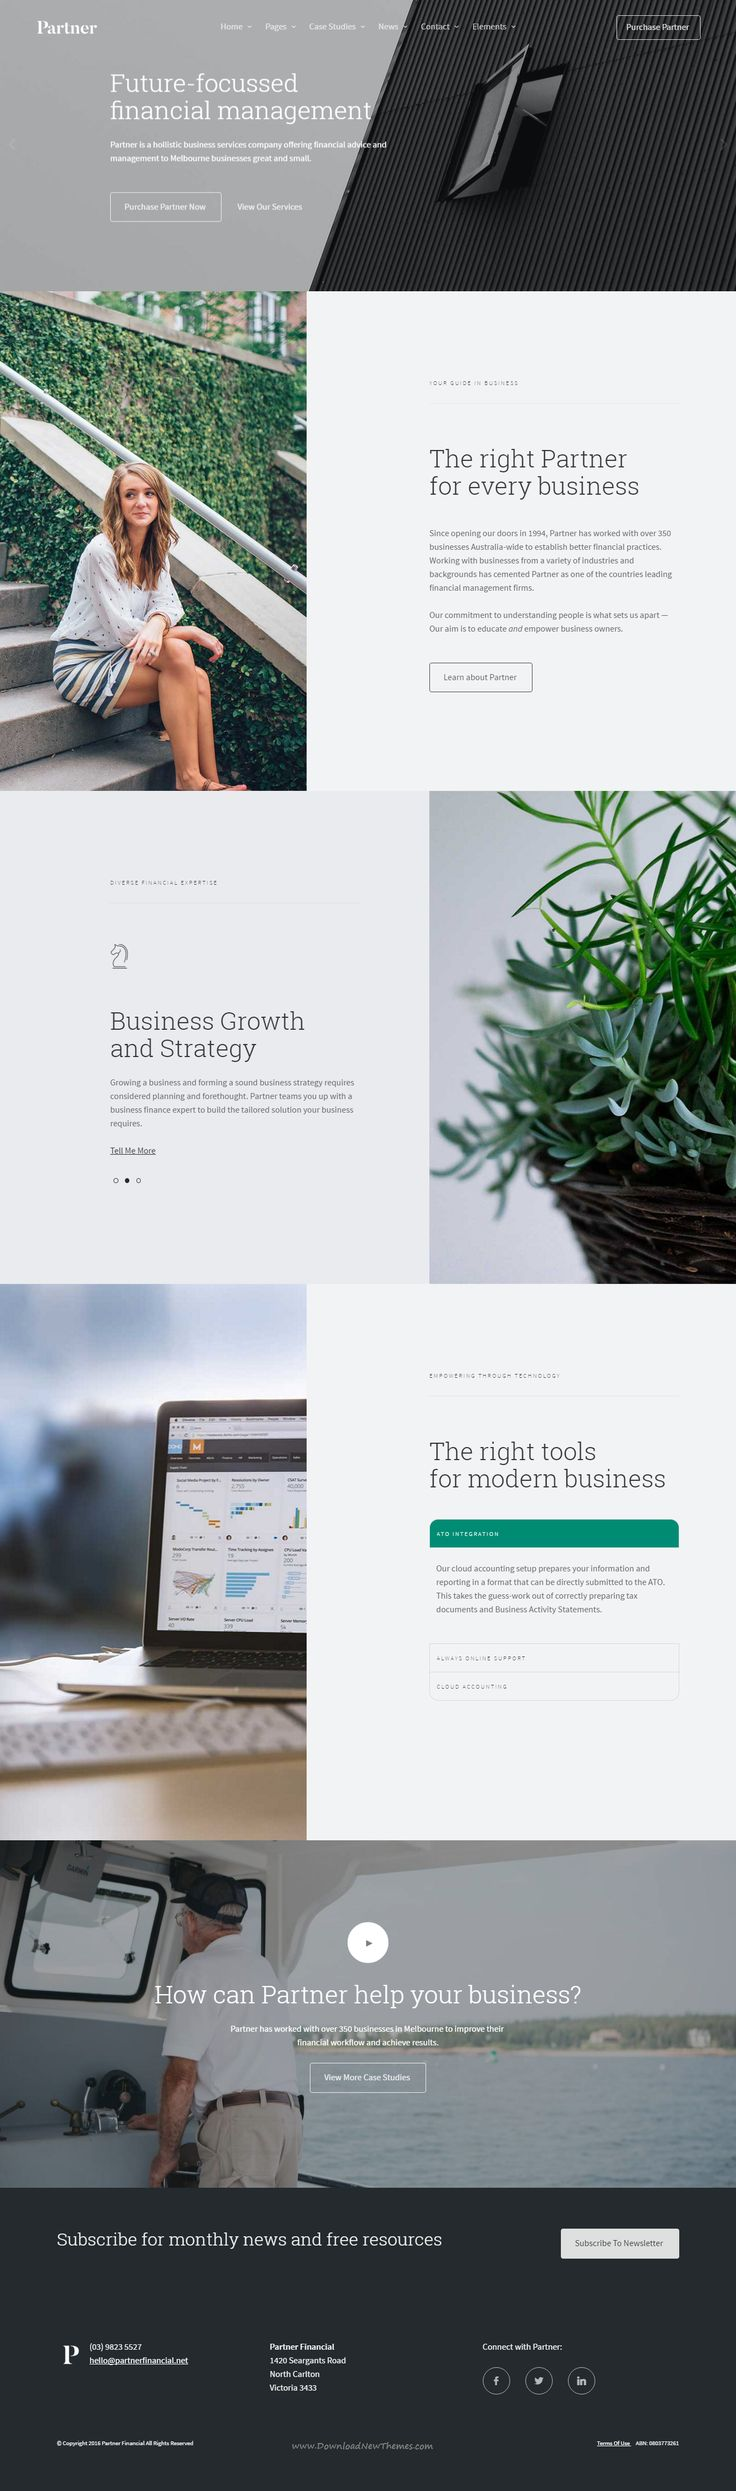 Professional Accounting, Financial and Law Firm Website Template with Variant Page Builder Download